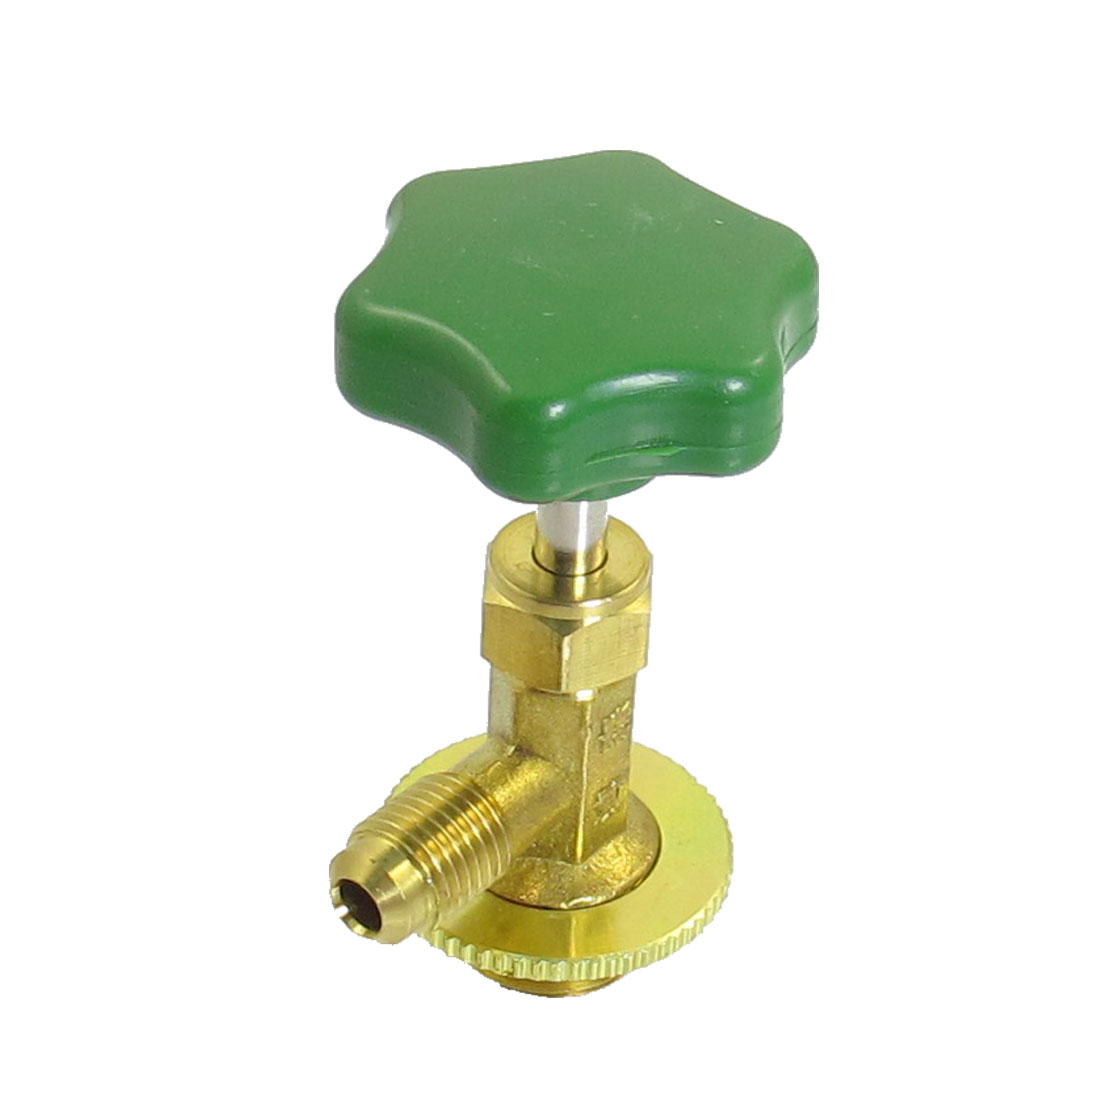 Screw On Can Tap Valve Bottle Opener Green for R12 Refrigerant